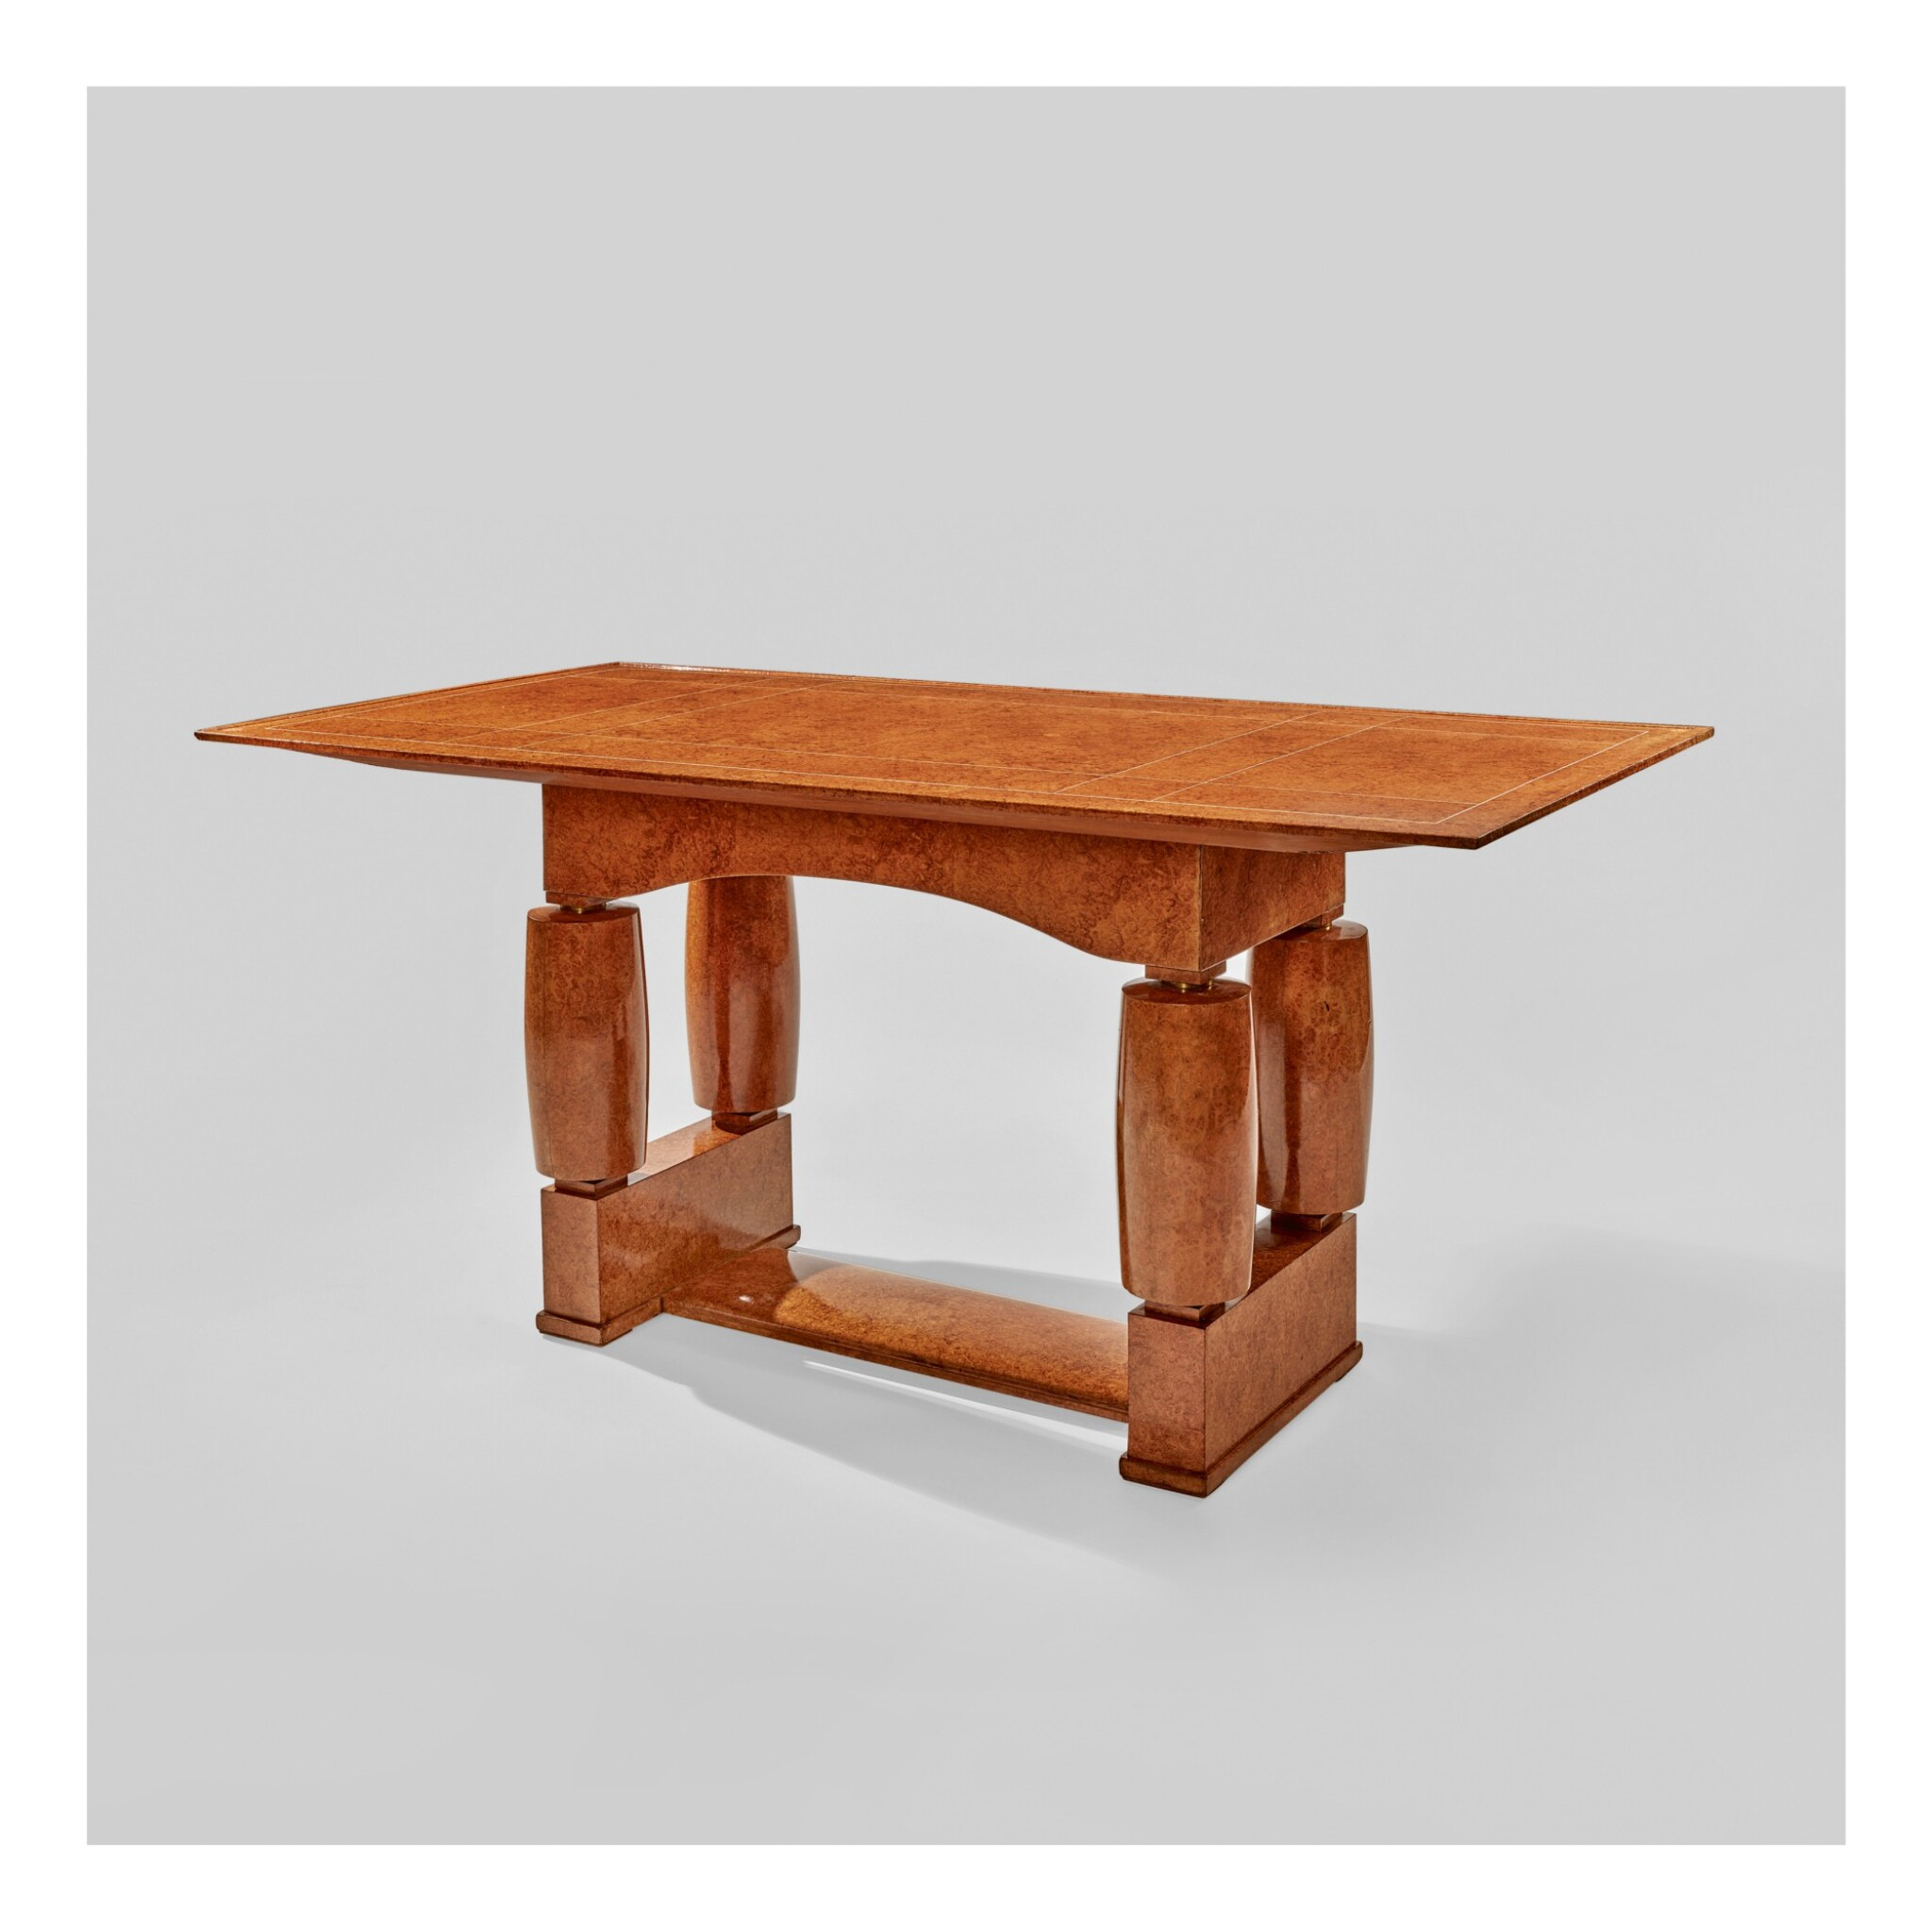 "View 1 of Lot 30. A Unique ""Lorcia"" Table, Model No. NR1510/AR1 029."